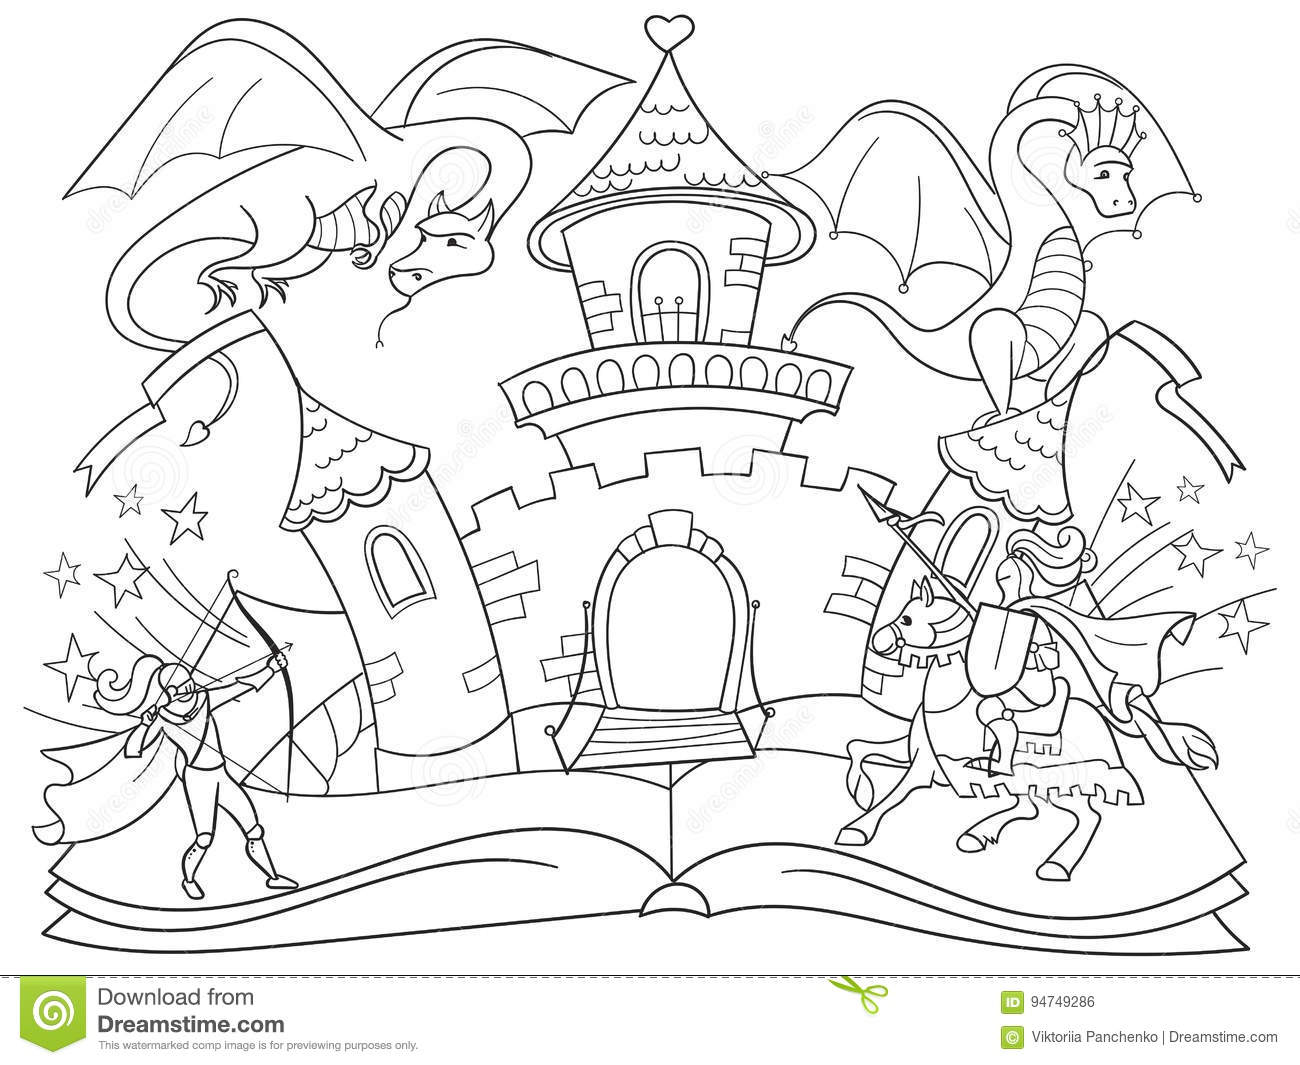 Tale cartoons illustrations vector stock images 41616 for Dragon and castle coloring pages